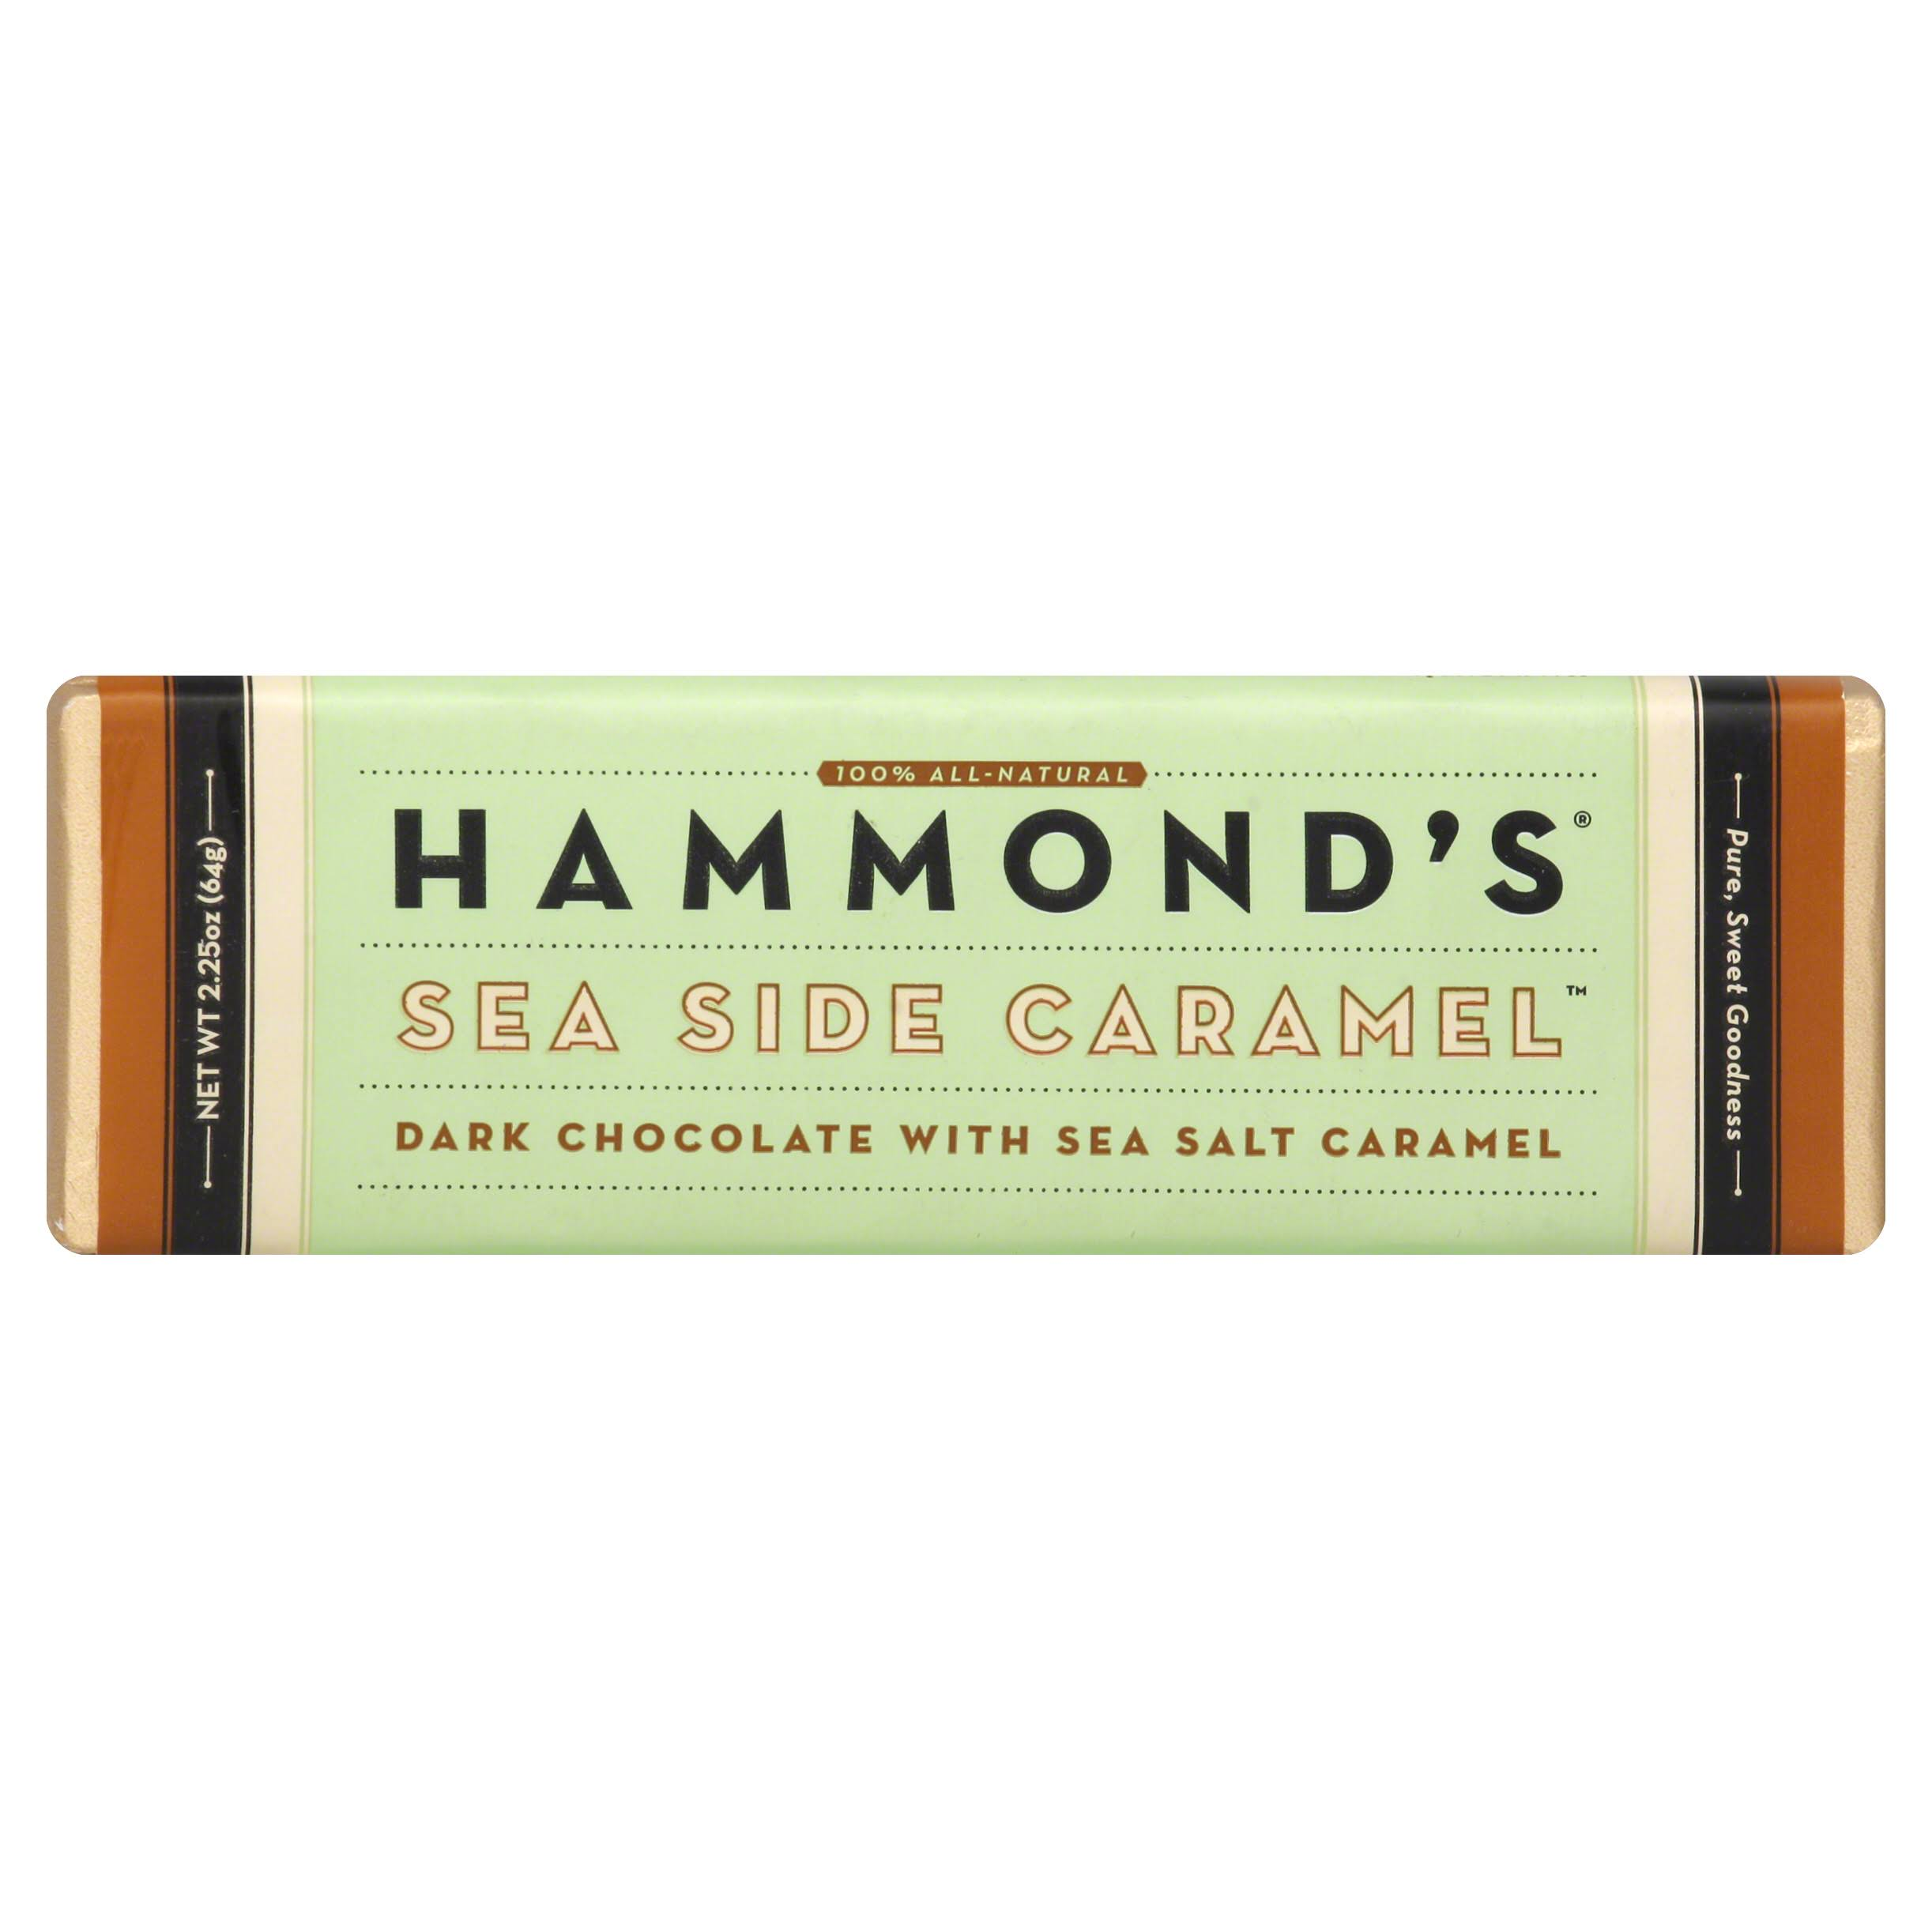 Hammond's Candies Sea Side Caramel Dark Chocolate - with Sea Salt Caramel